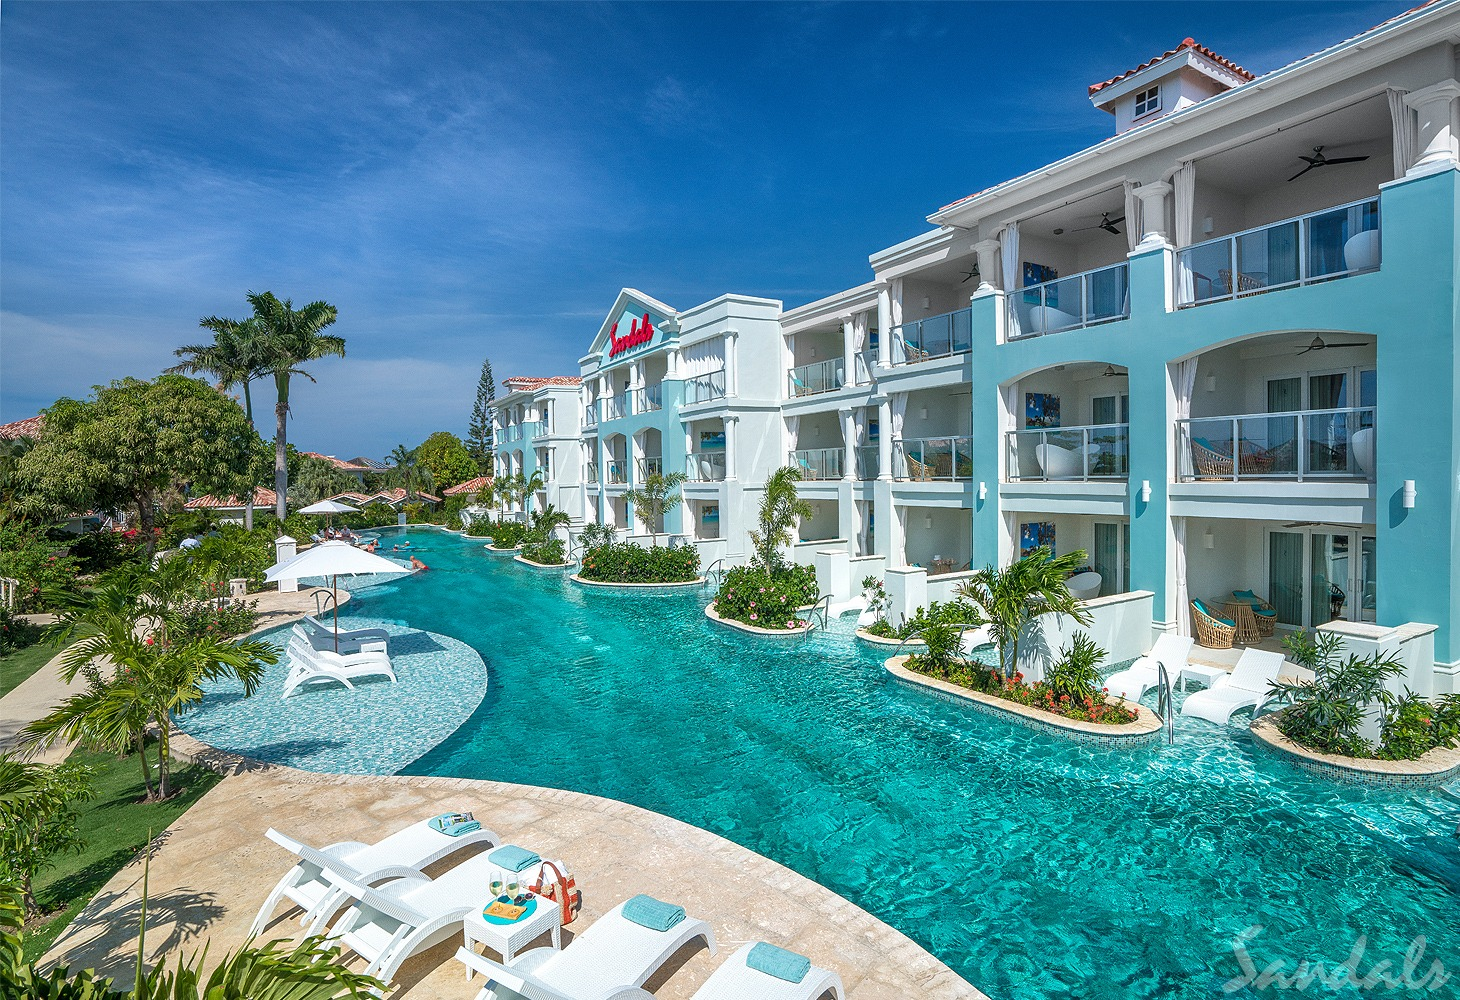 UPDATED: Sandals Montego Bay Resort - Dreams and ... on sandals carlyle, sandals resort antigua, sandals emerald bay resort map, sandals montego bay jamaica,